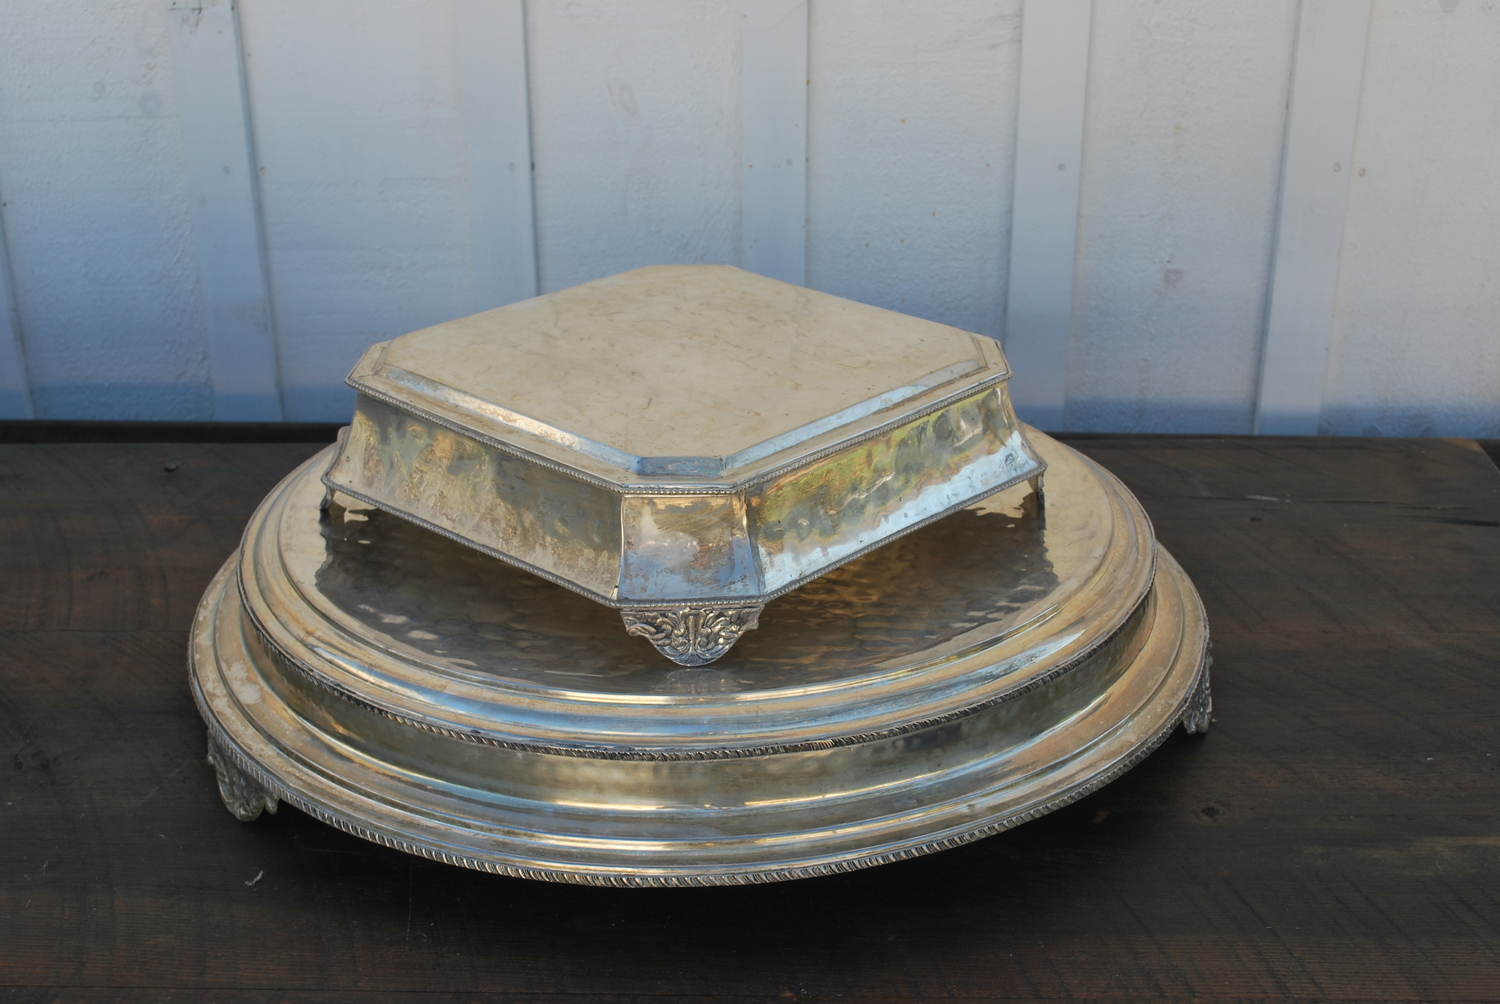 "Silver Cake Stands $15 each, 3 available. The largest is 22"" on the top and 27"" across bottom. The other is 12"" across the top and 15 1/2"" across the bottom. One more available - see picture."